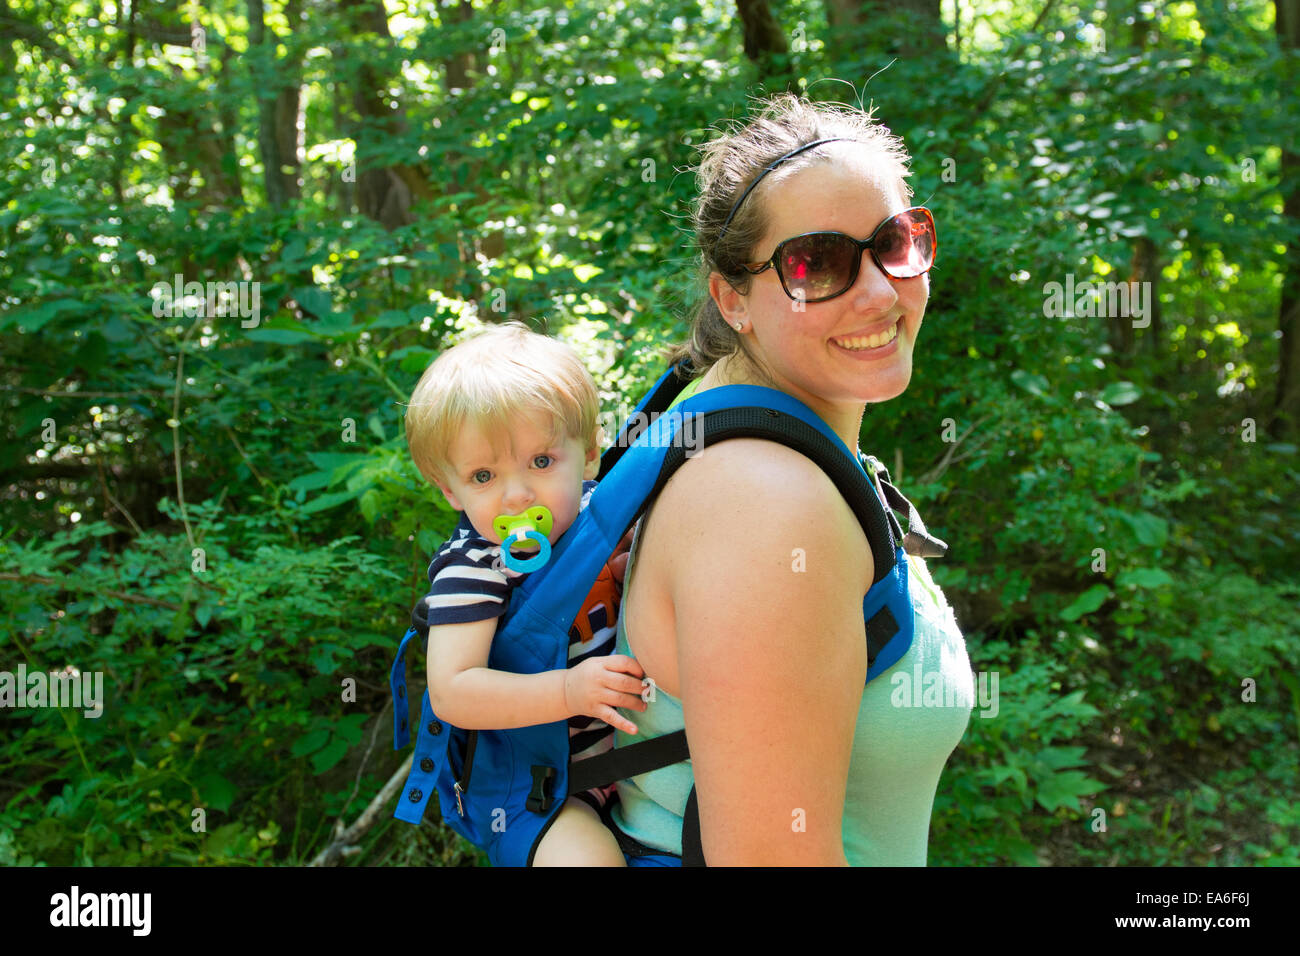 USA, Indiana, Mother and son hiking in woods - Stock Image